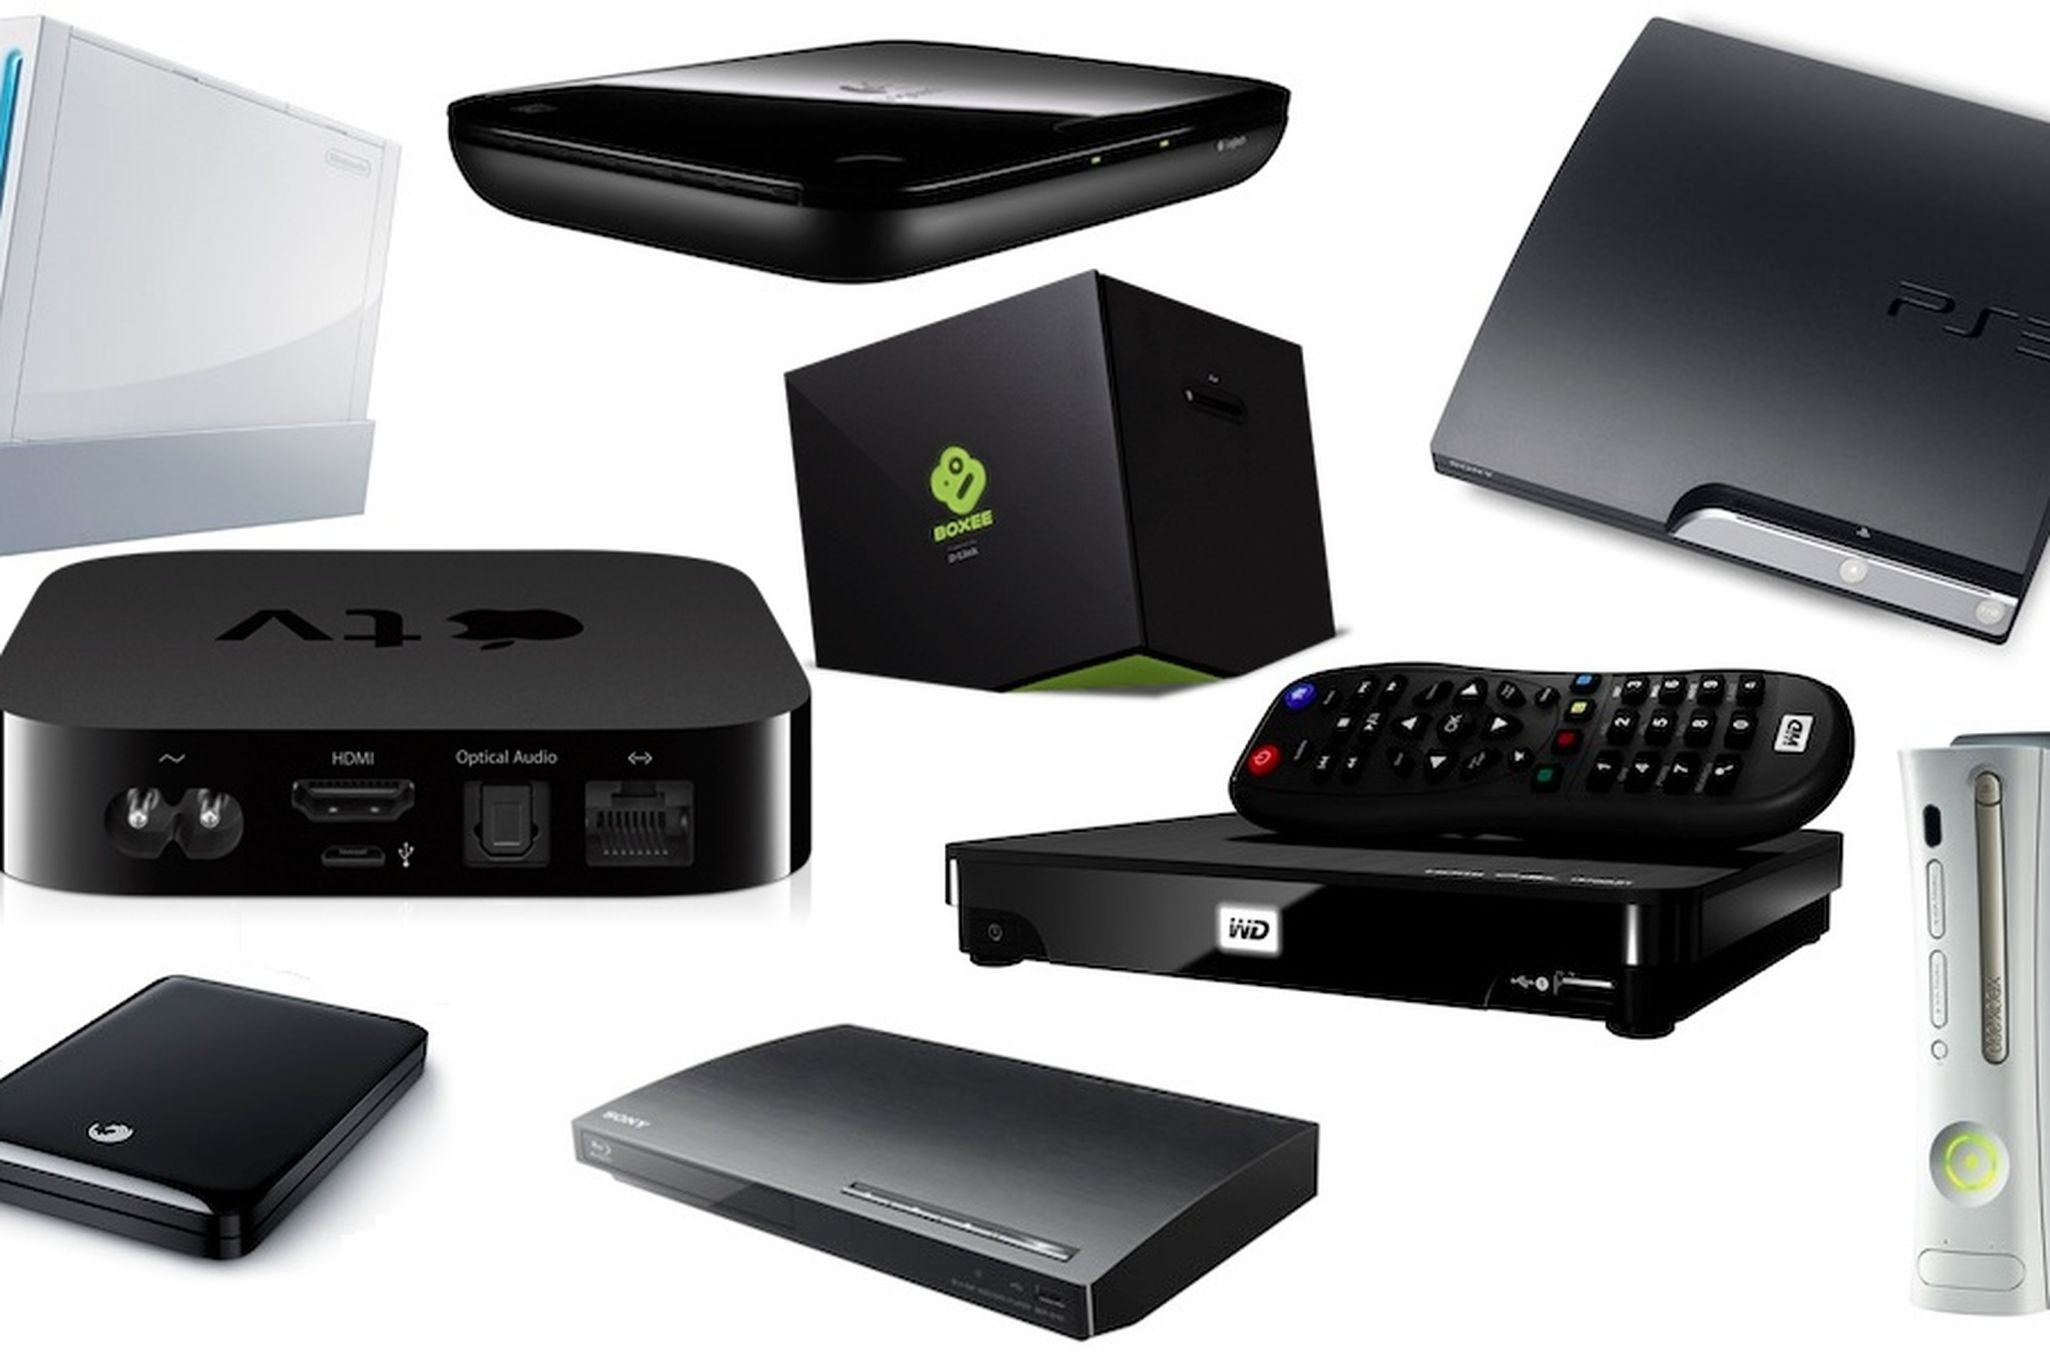 Set-Top Boxes Market Is Projected To Register A Healthy CAGR Of +7.45% By 2026 With Top Key Players Huawei Technologies Co., Ltd., Apple Inc., SAMSUNG, Echostar Corporation, Technicolor